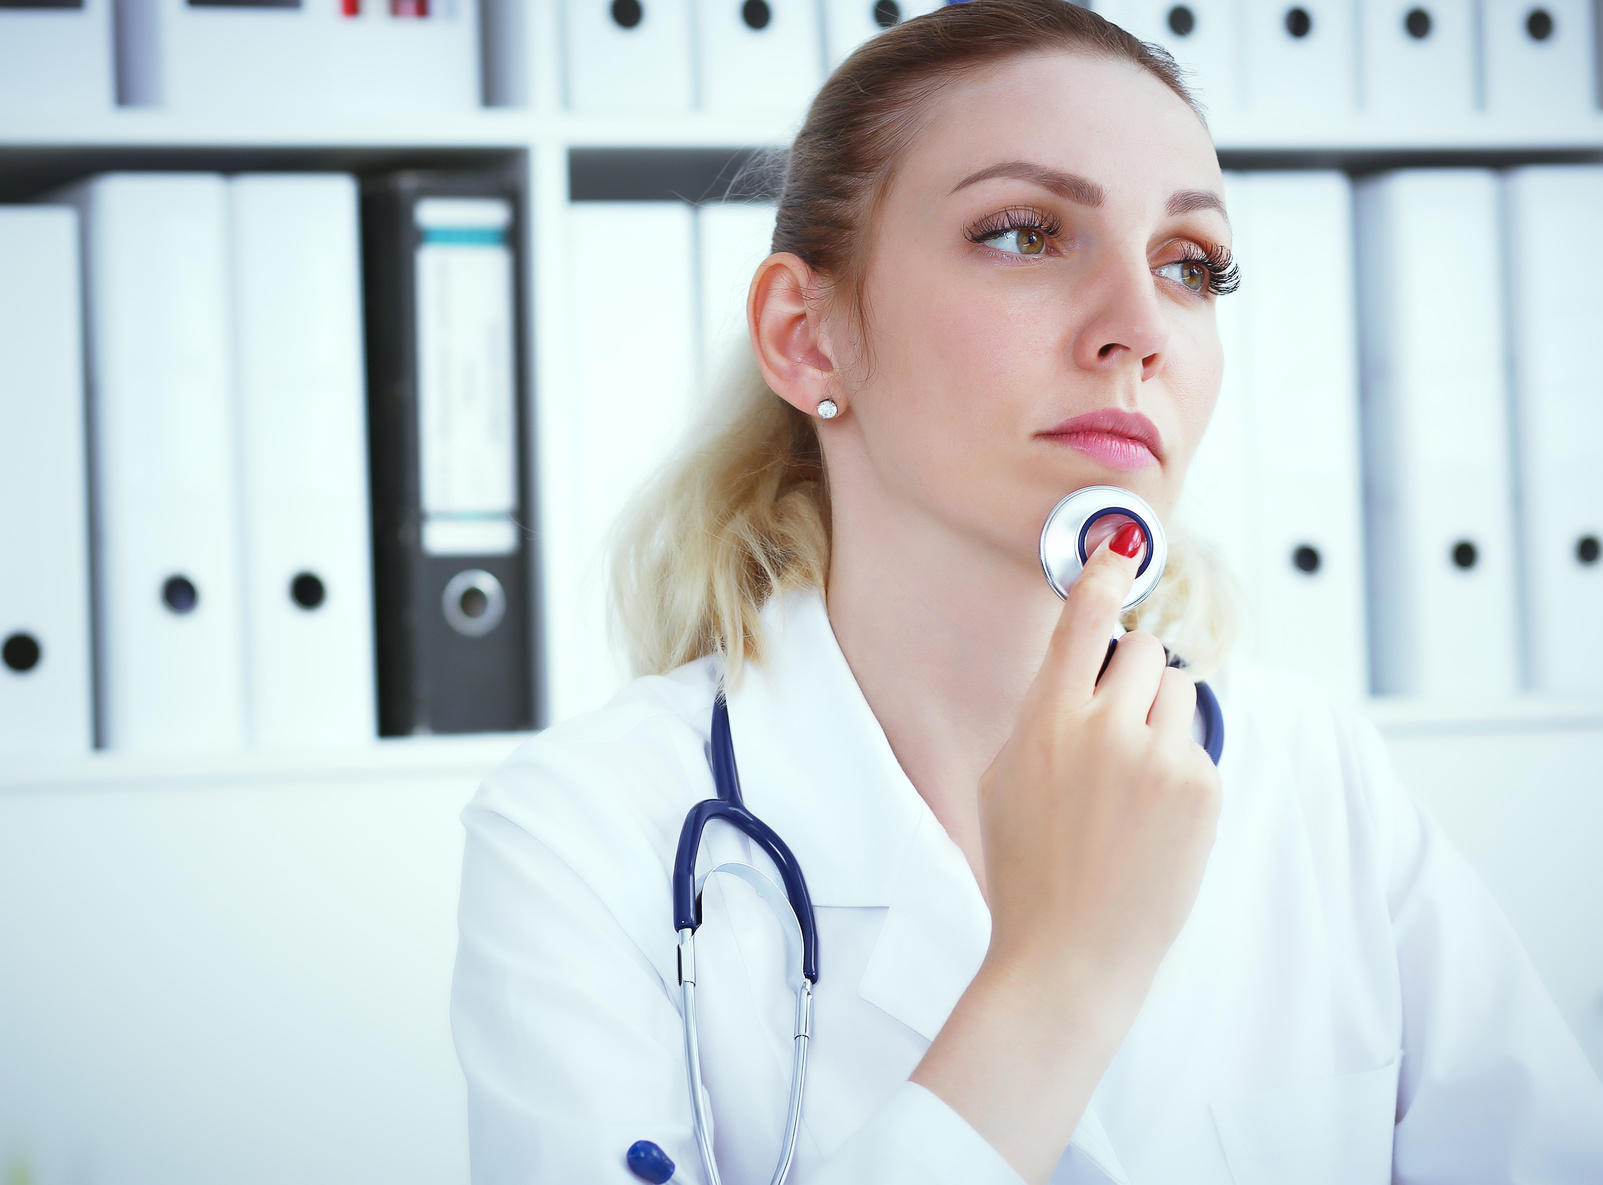 Mused female doctor holding her hand with stethoscope near her chin while looking into the distance.